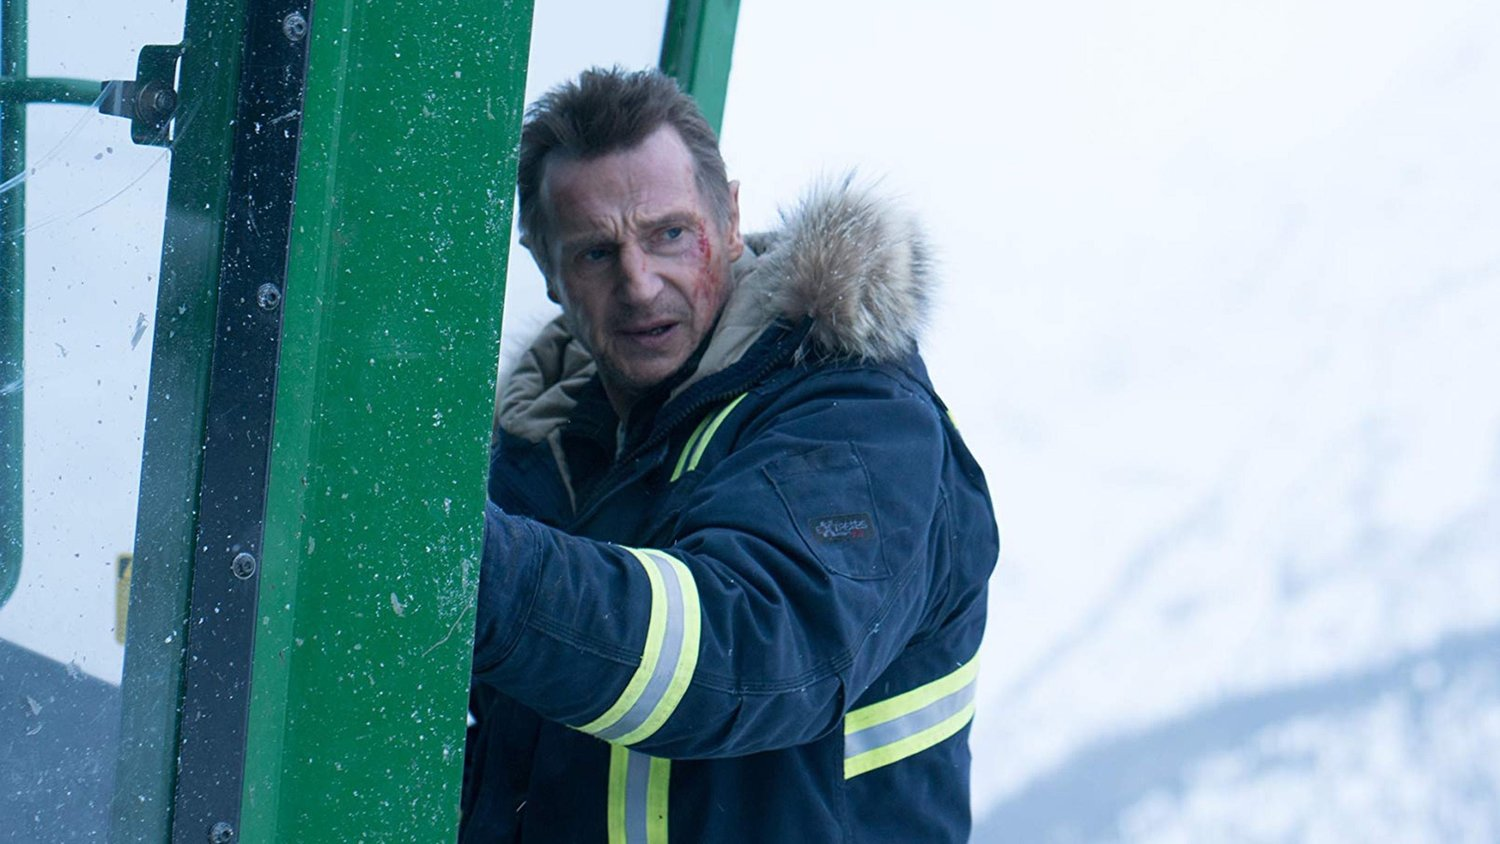 """""""Liam Neeson Is Set To Star In Action Thriller """"Memory"""" From Director Martin Campbell, Check report"""""""